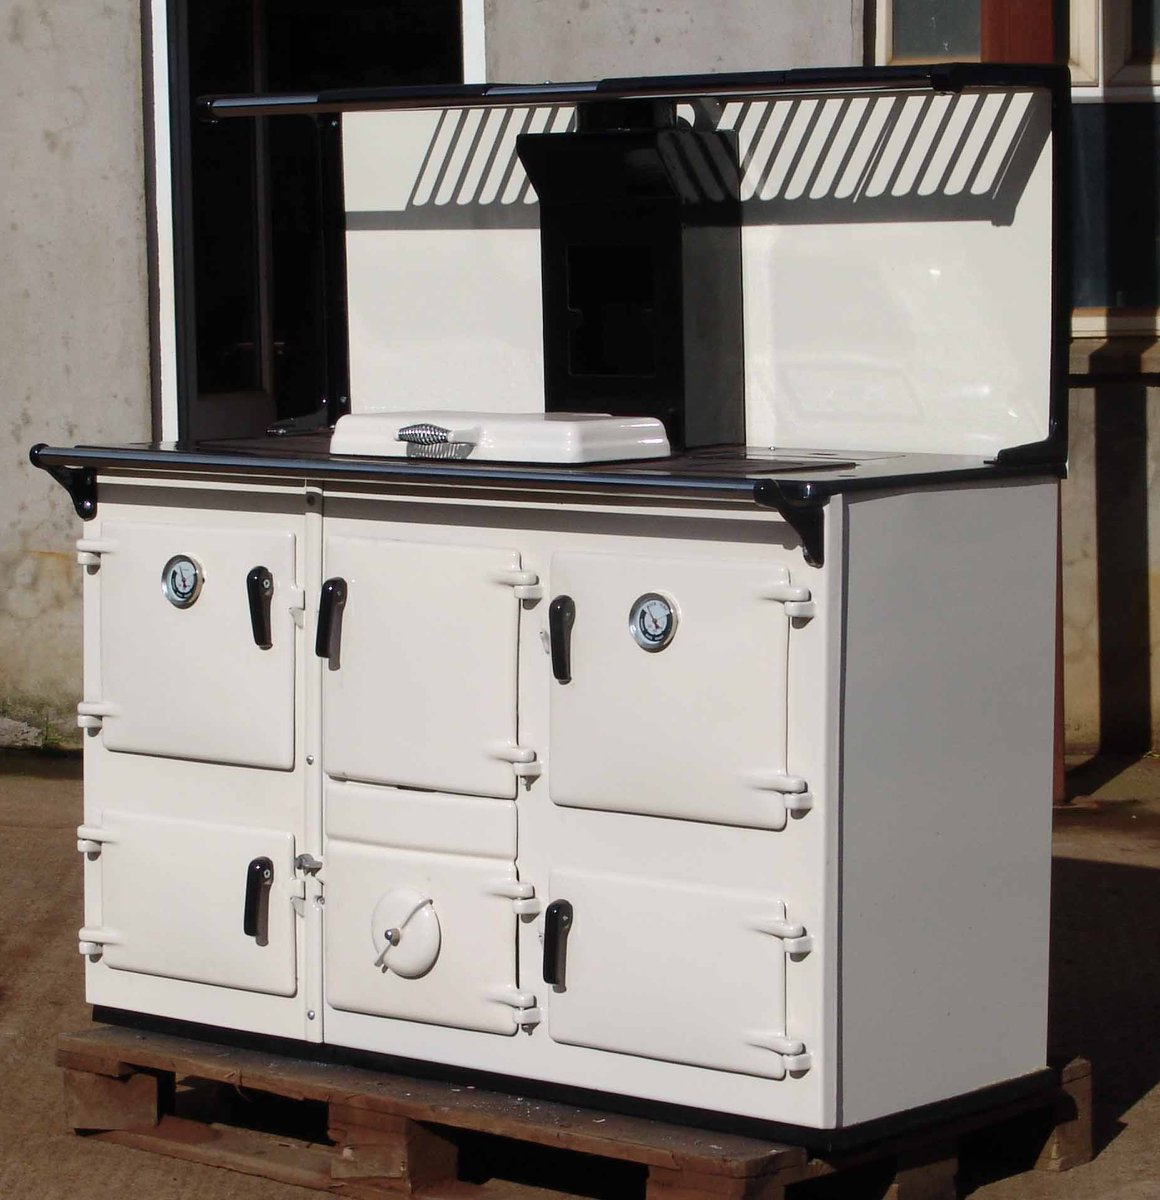 H&F Cookers on Twitter: \